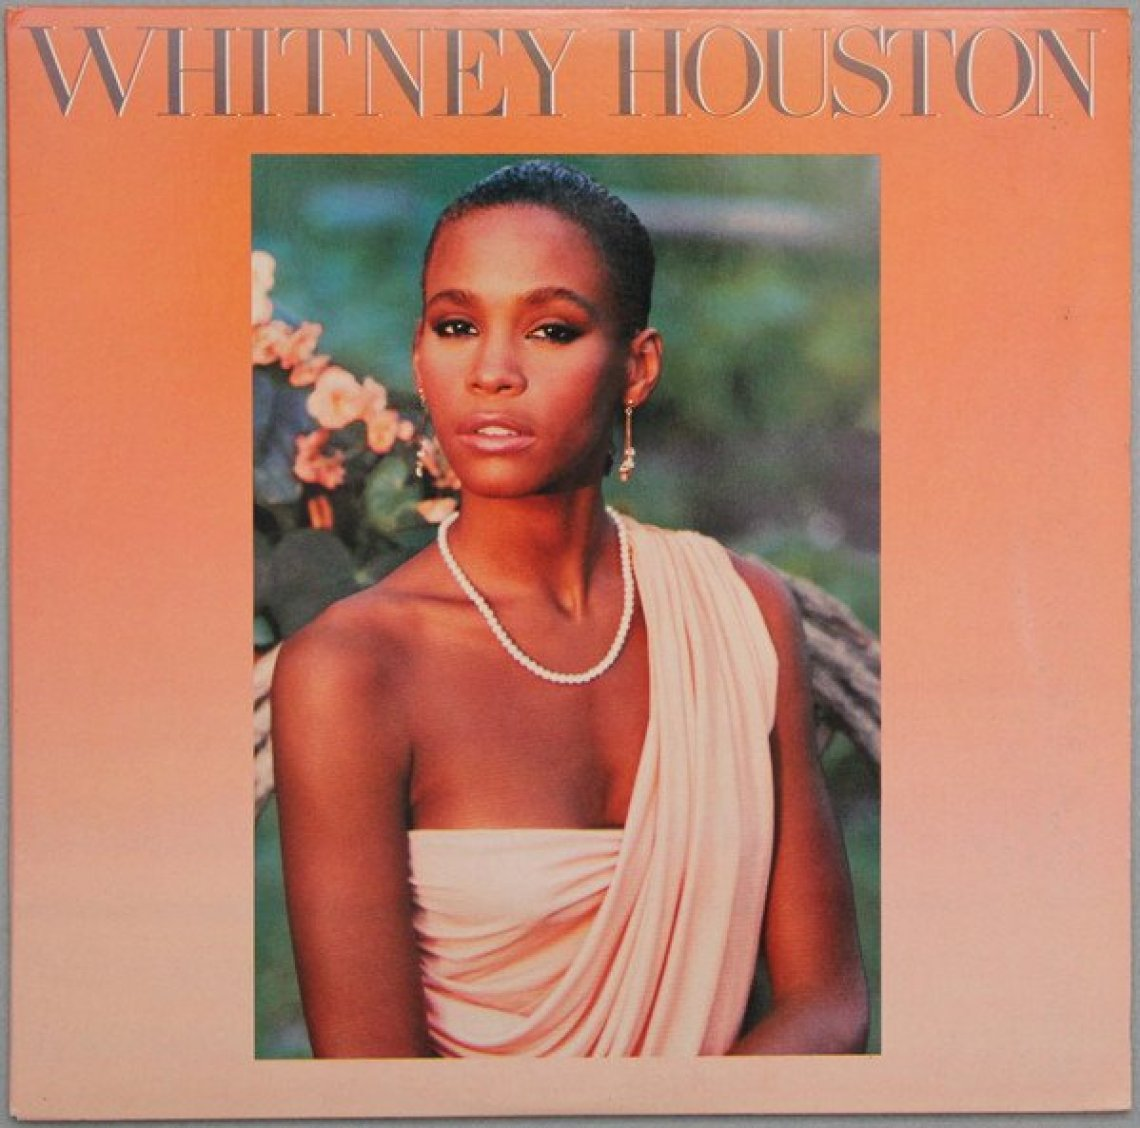 The Legend Slot: Whitney Houston - Whitney Houston (1985) - Whitney Houston - Female Original